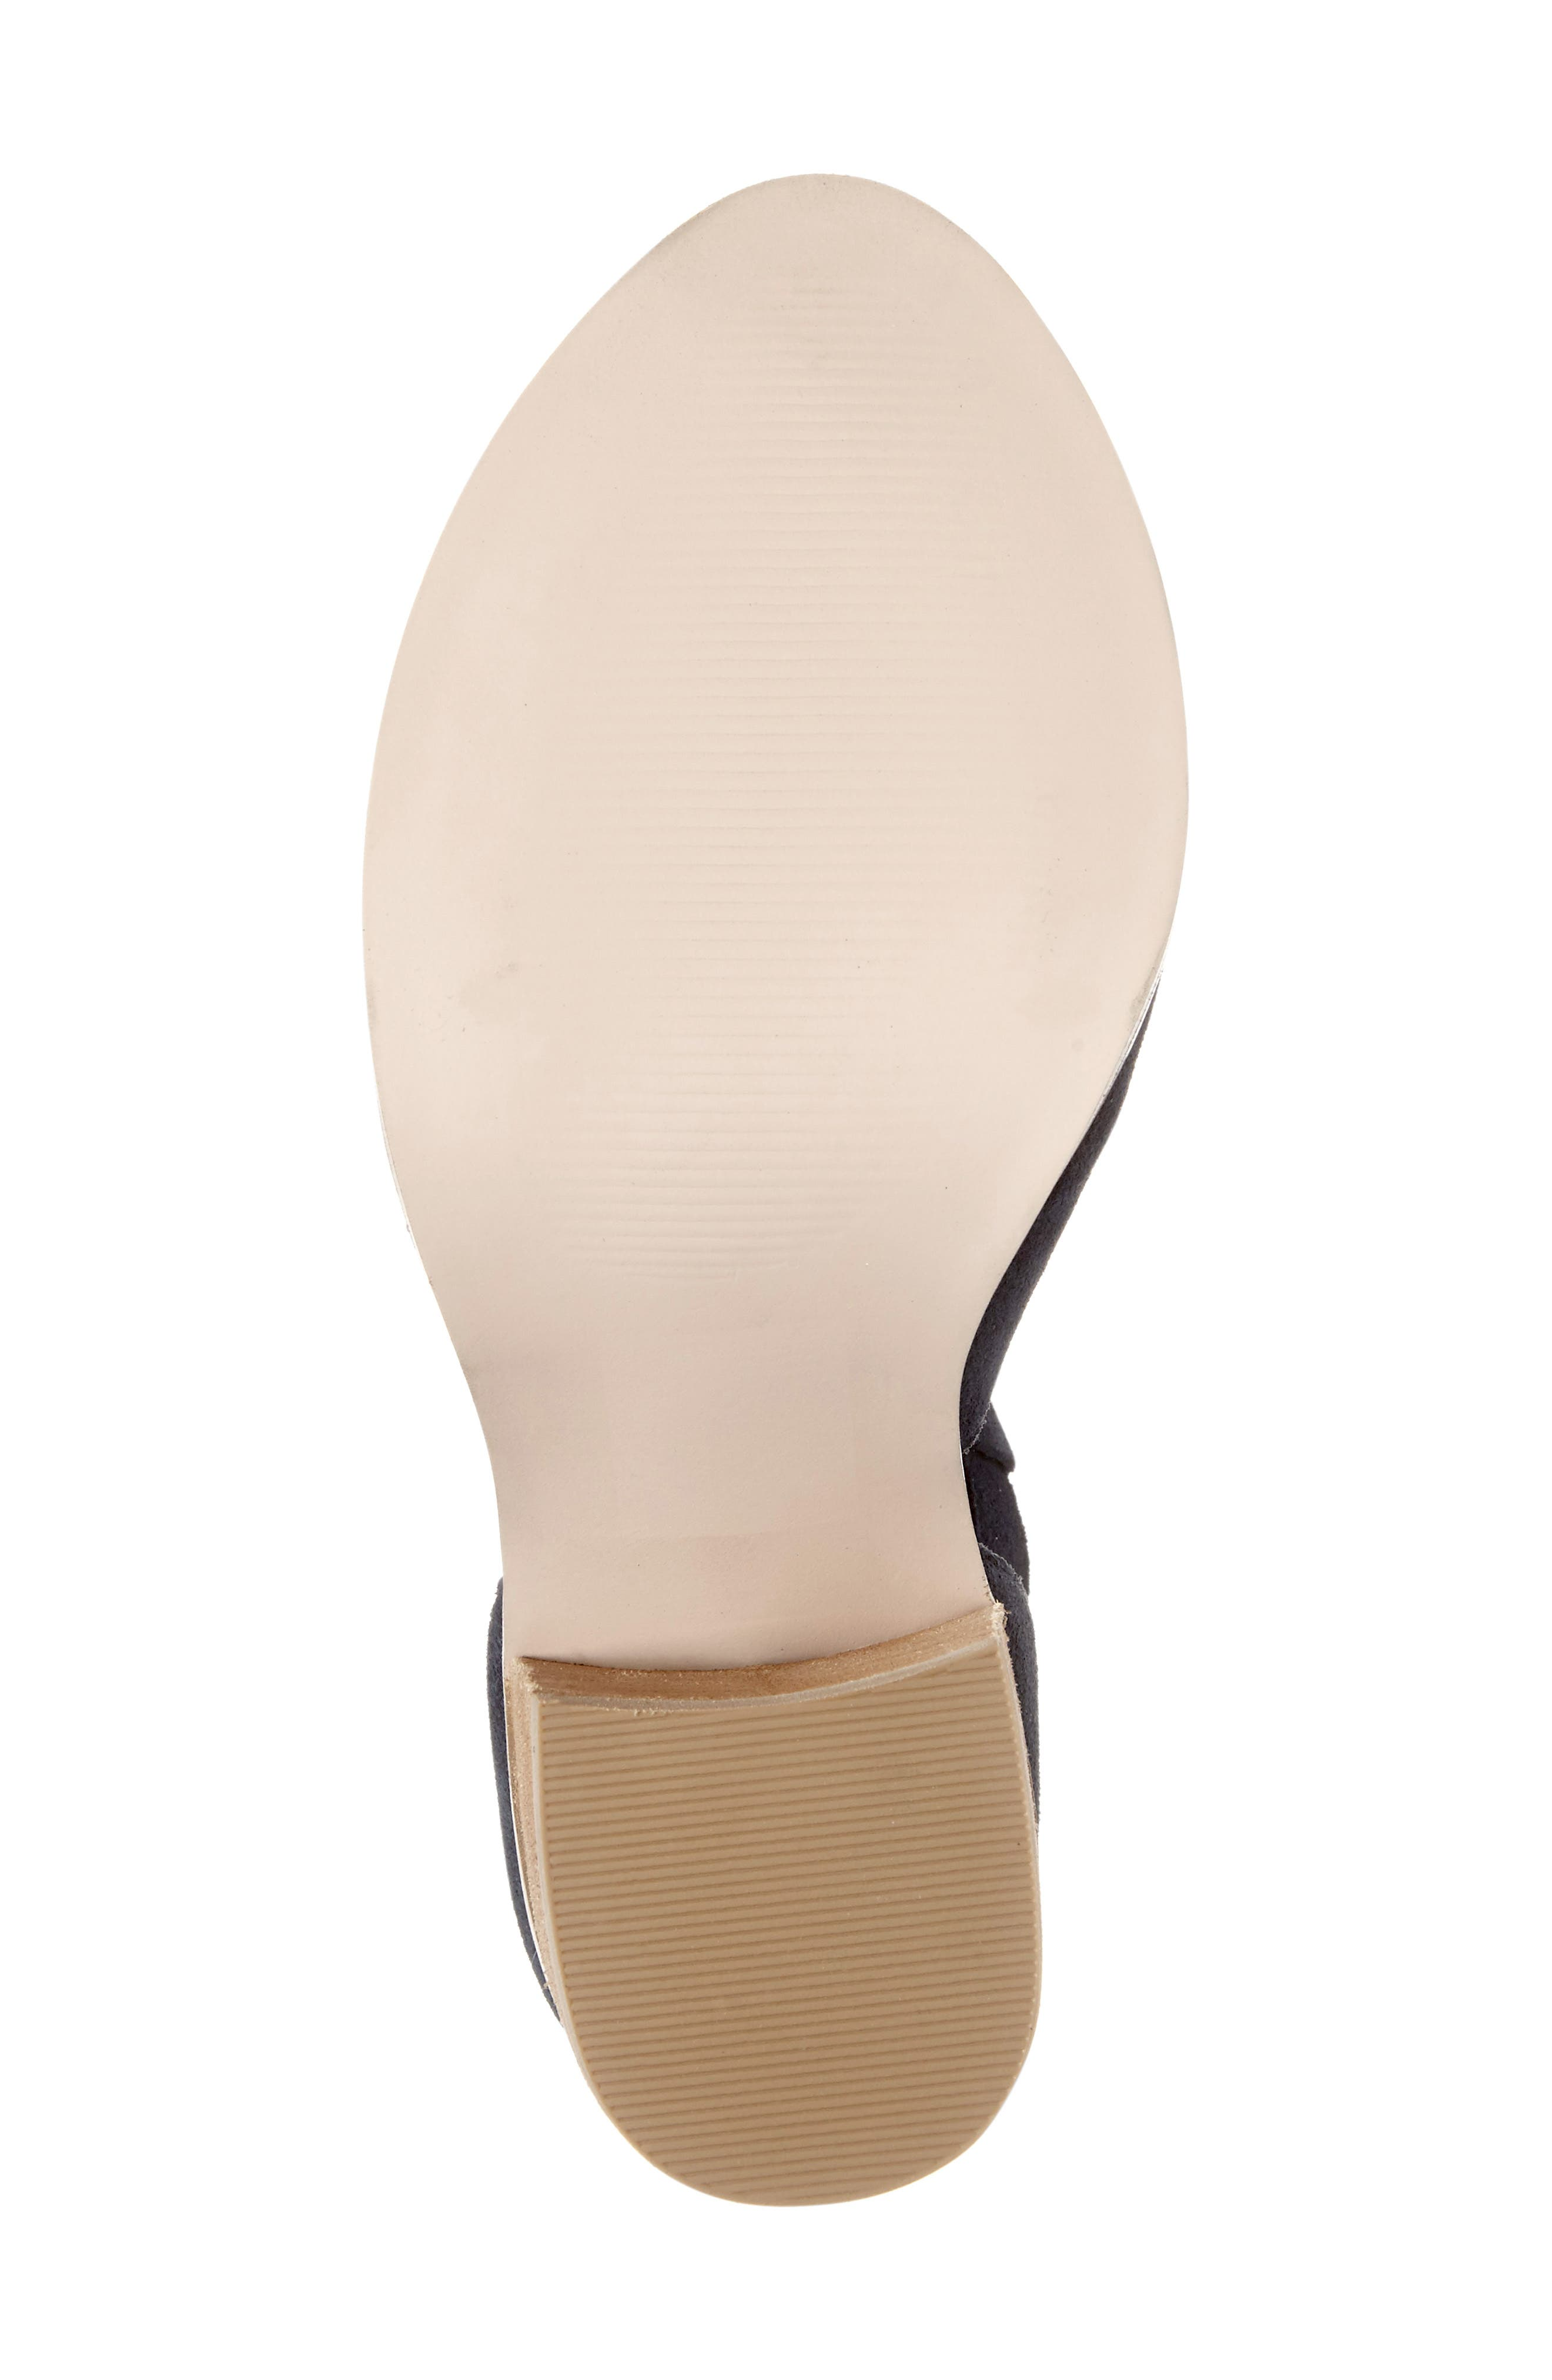 SOLE SOCIETY, 'Ferris' Open Toe Bootie, Alternate thumbnail 6, color, INK SUEDE